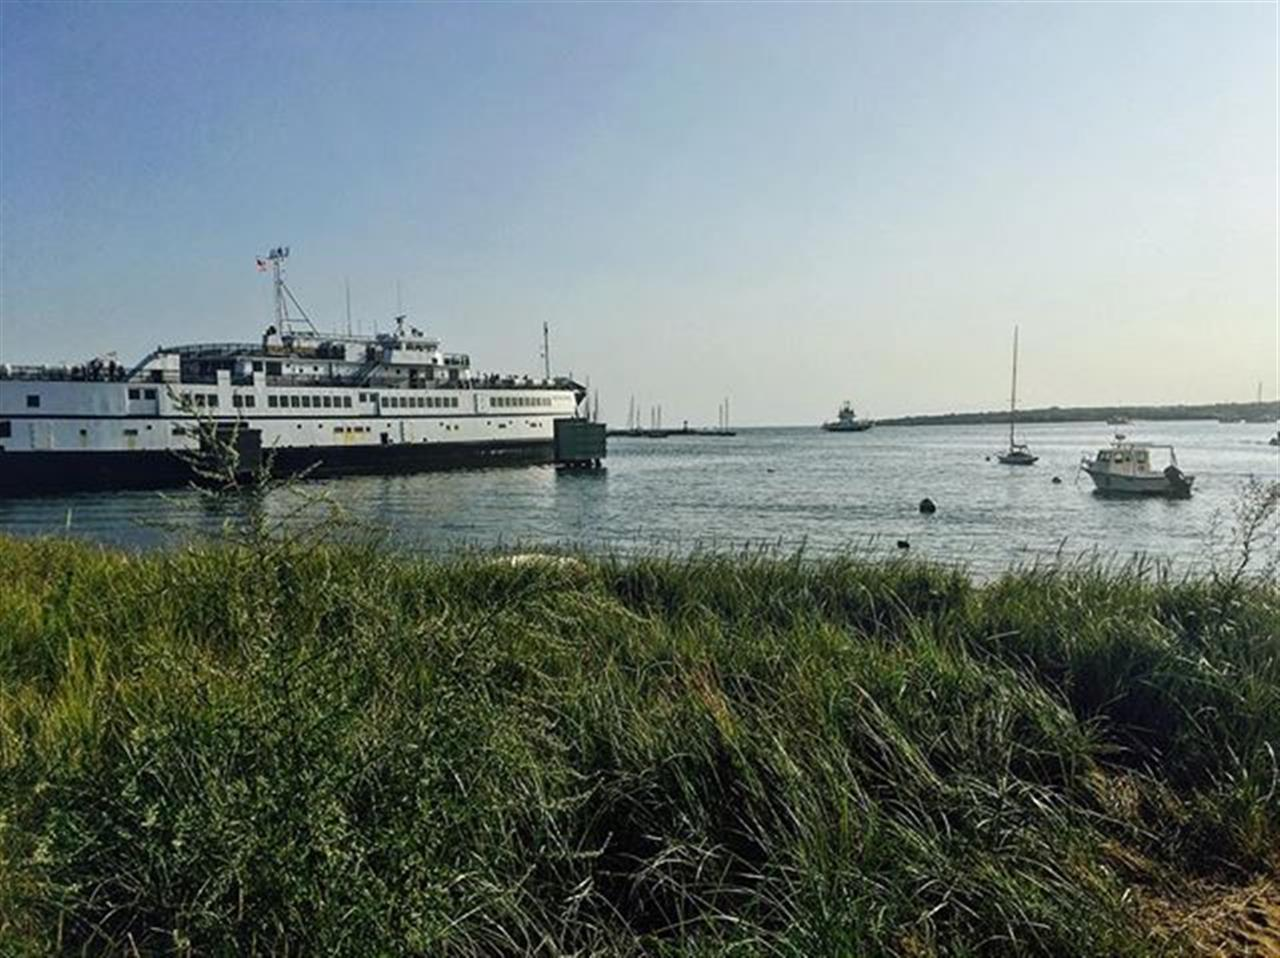 #GreetingsFromMV: The ferry prepares to depart after another great weekend on the Vineyard!